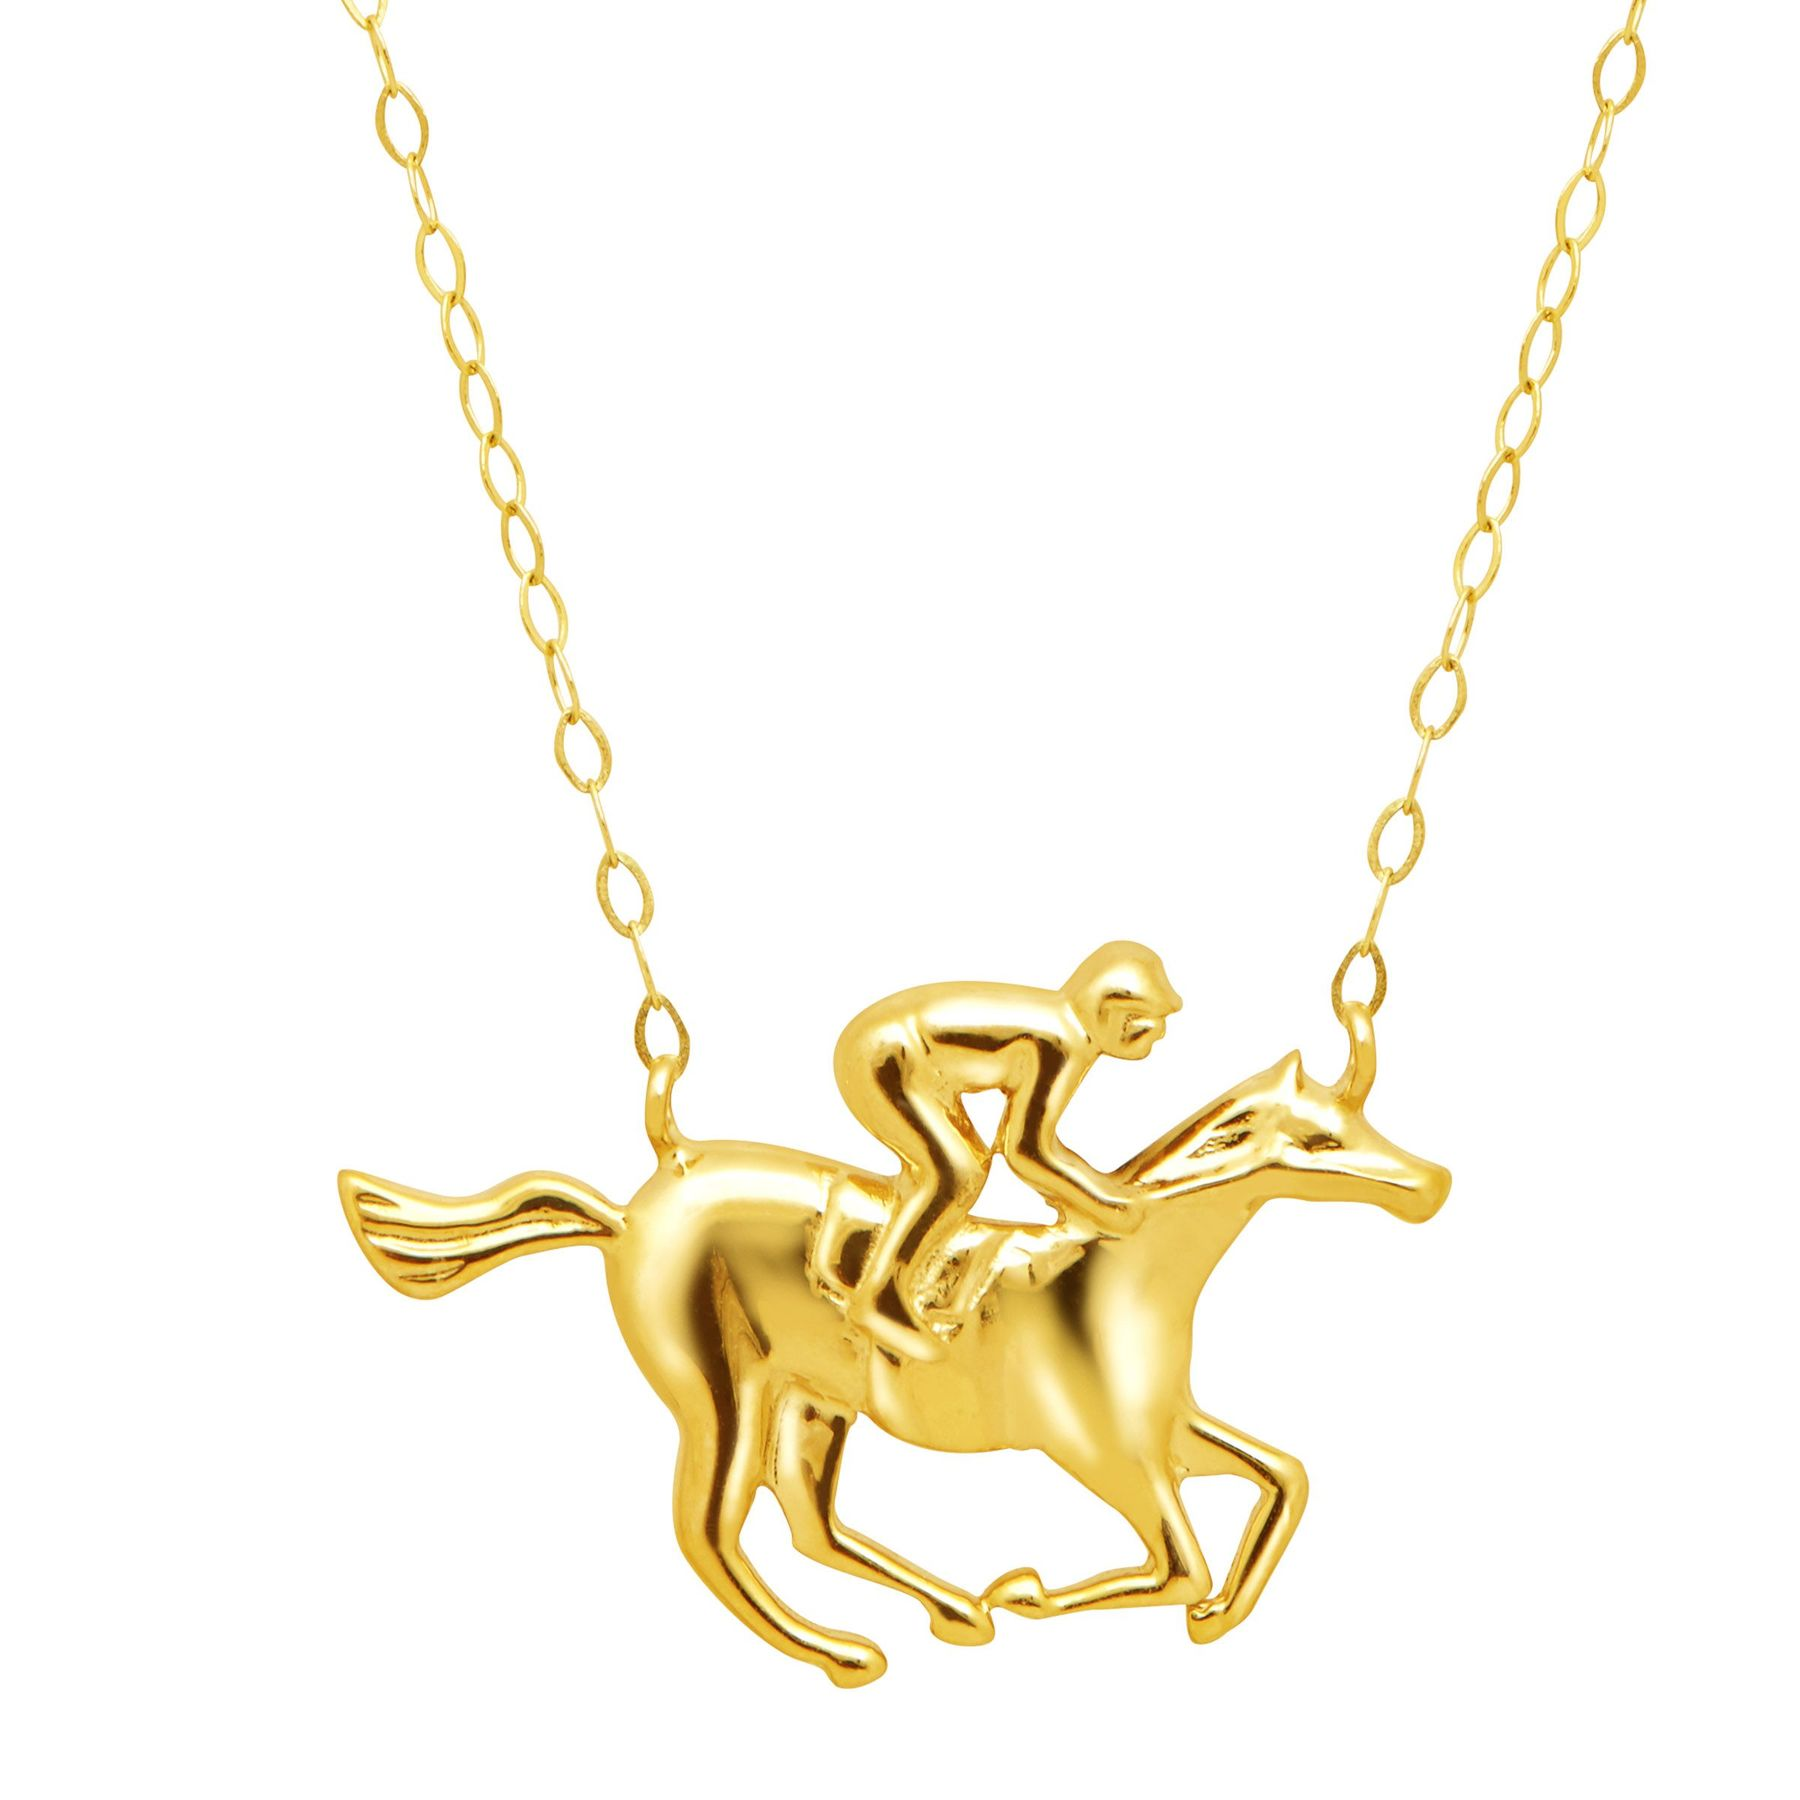 necklaces horse pendants glass index heart necklace product jewelry new jewellery music pendant